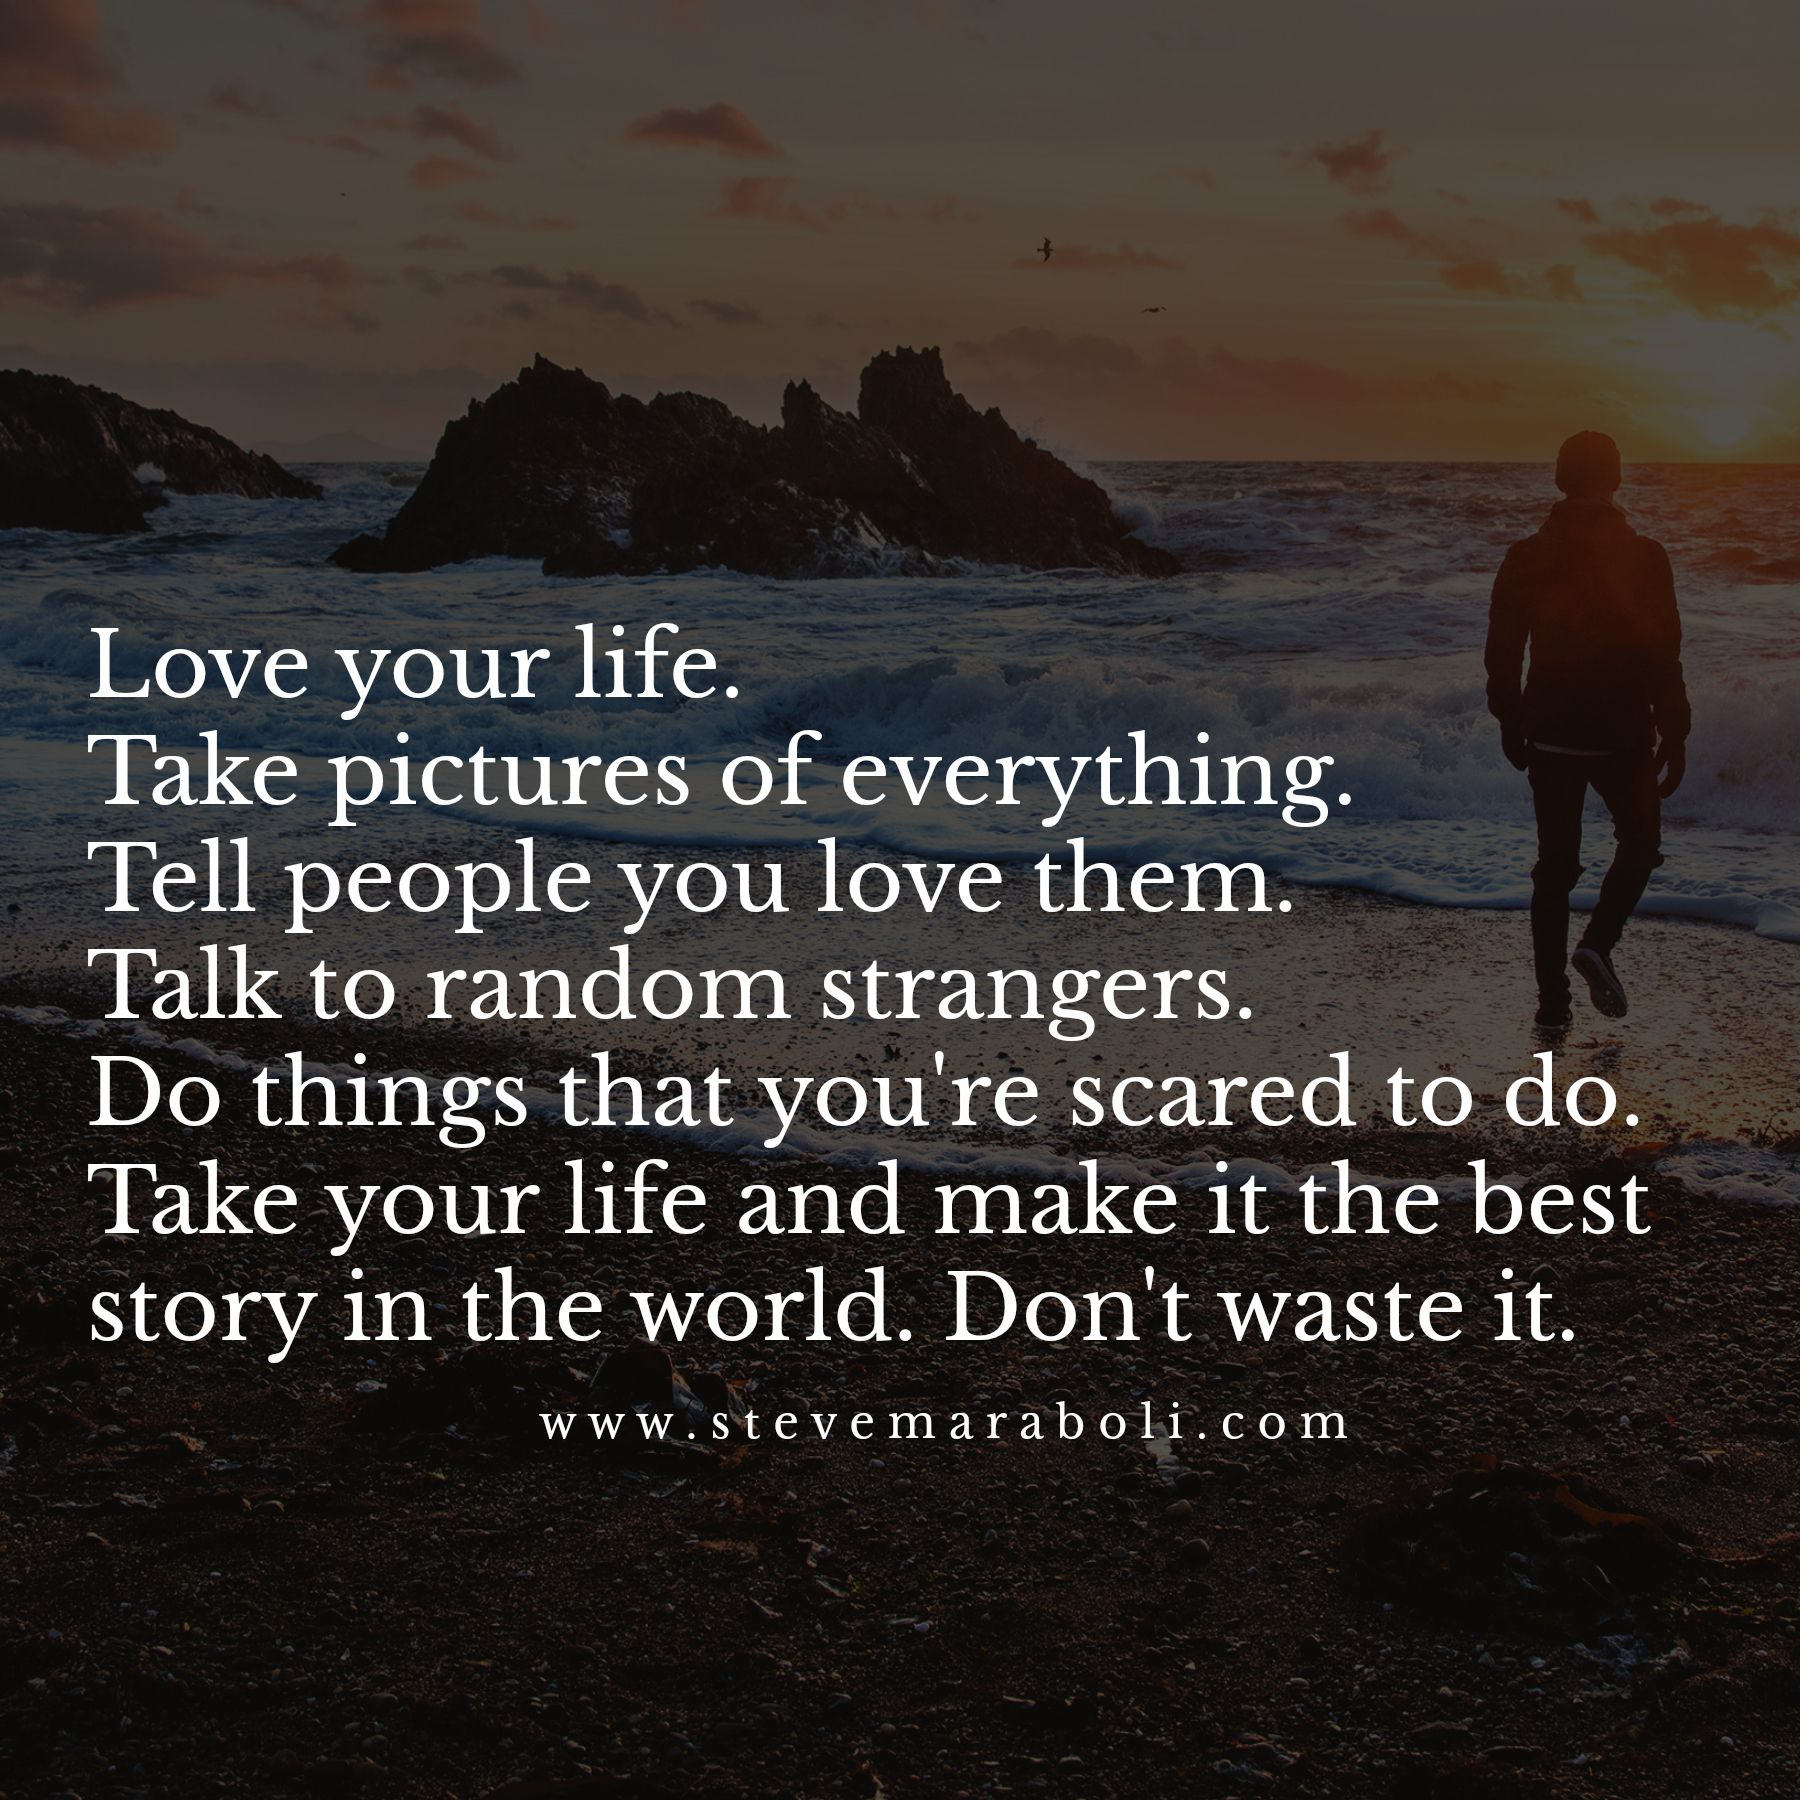 Pin by B W on Quotes | Life is too short quotes, New life ...